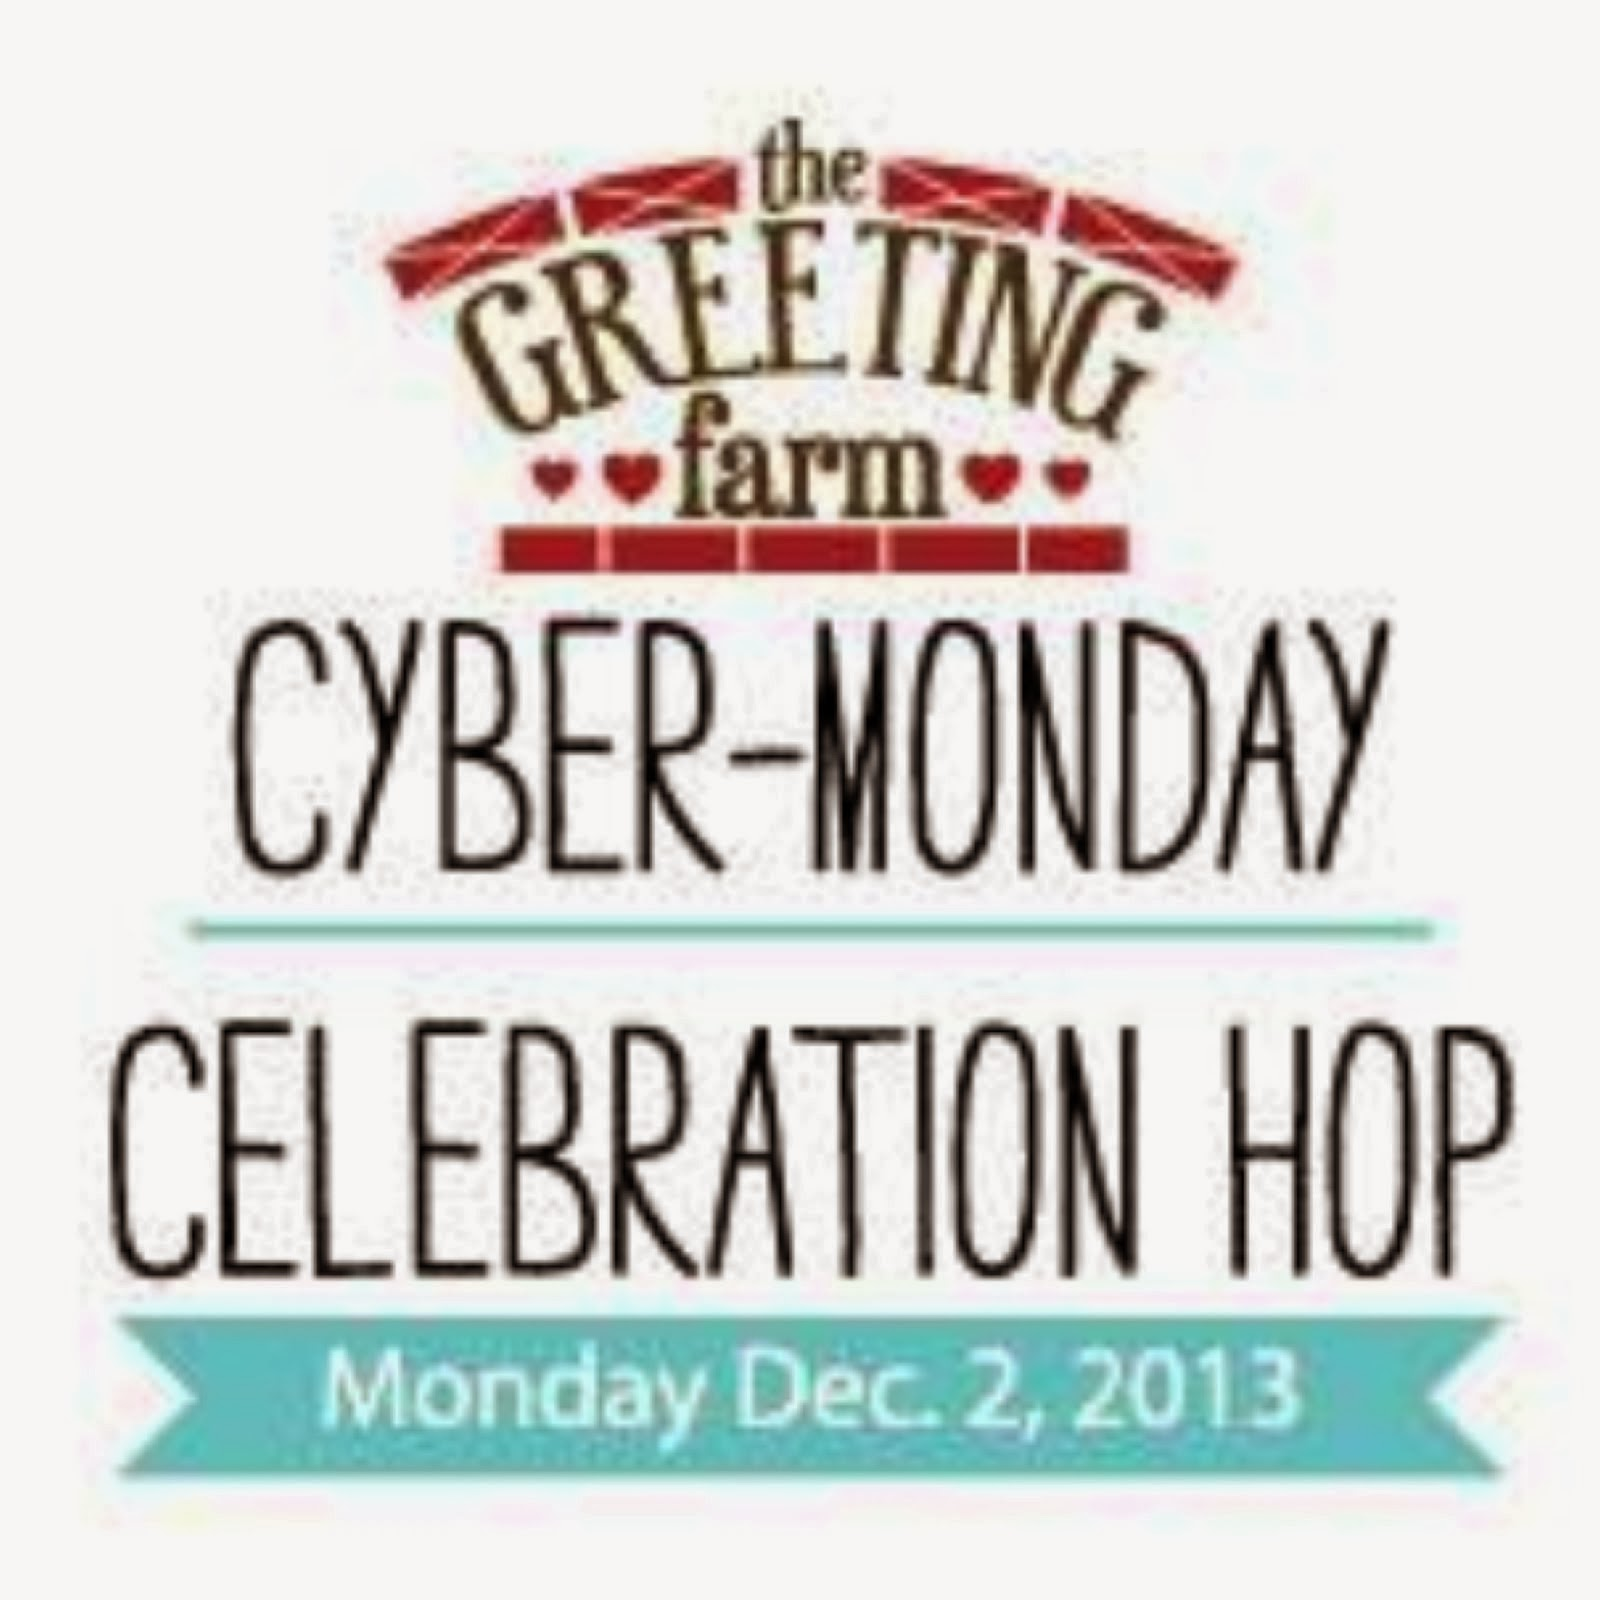 TGF - CYBER MONDAY CELEBRATION BLOG HOP